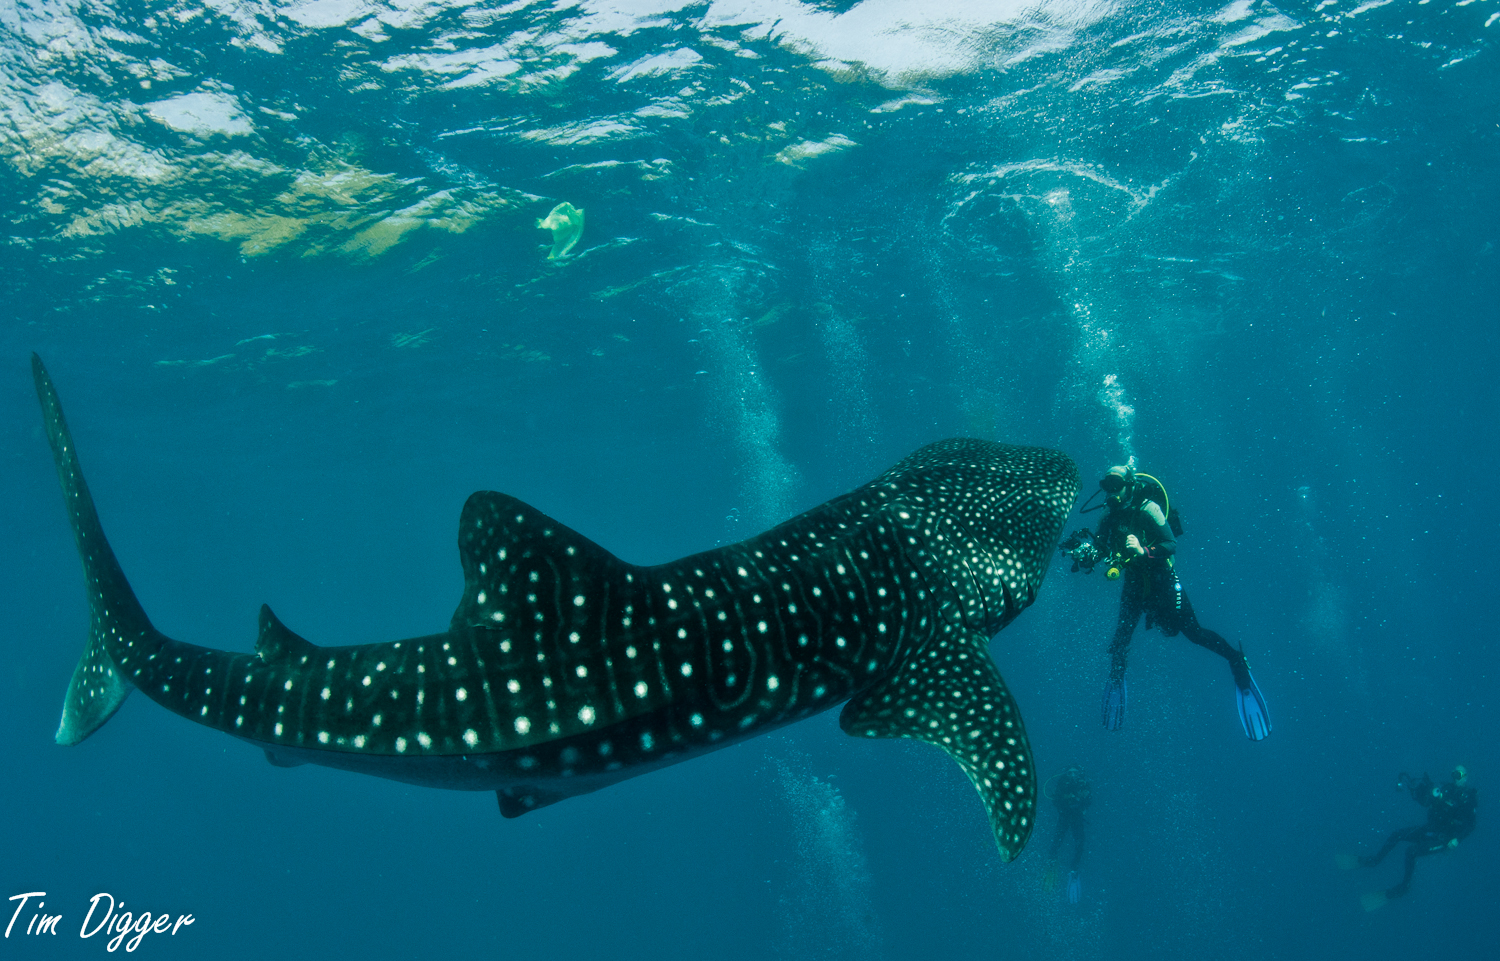 Whale shark at Tana-wan, Oslob by Tim Digger